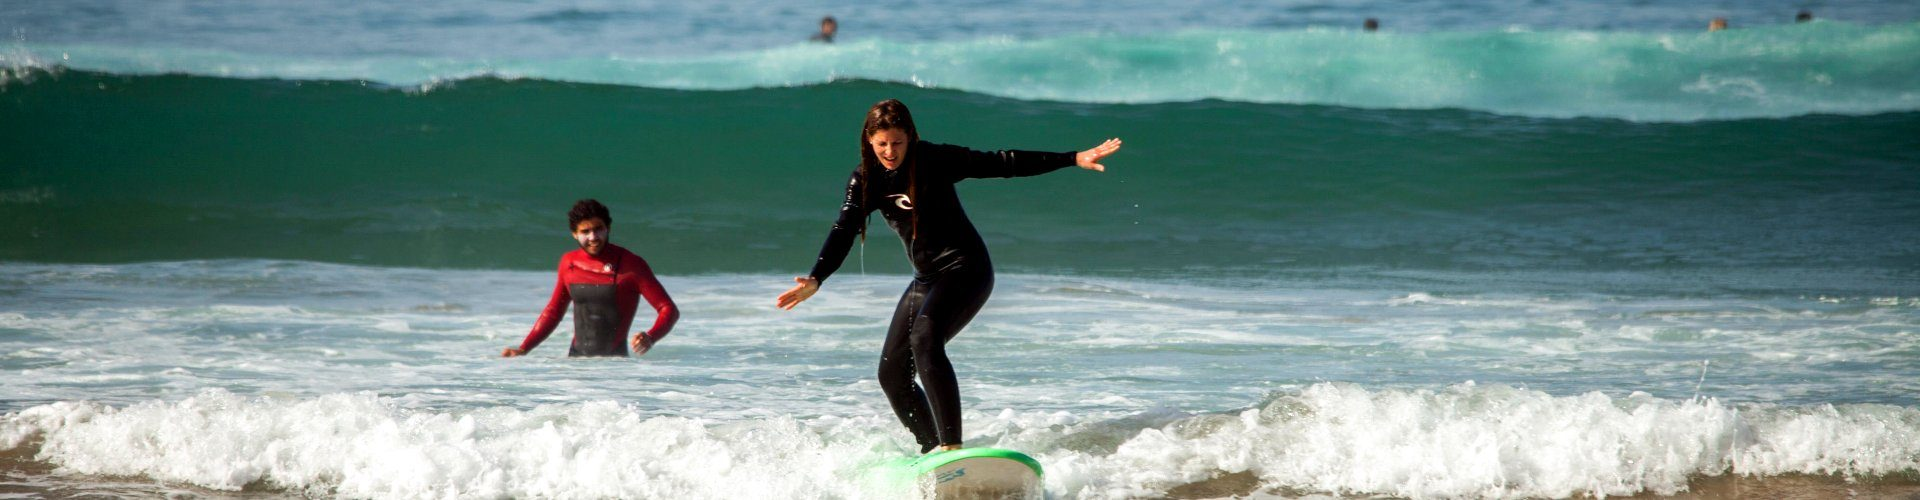 Surf camp Africa Morocco Taghazout